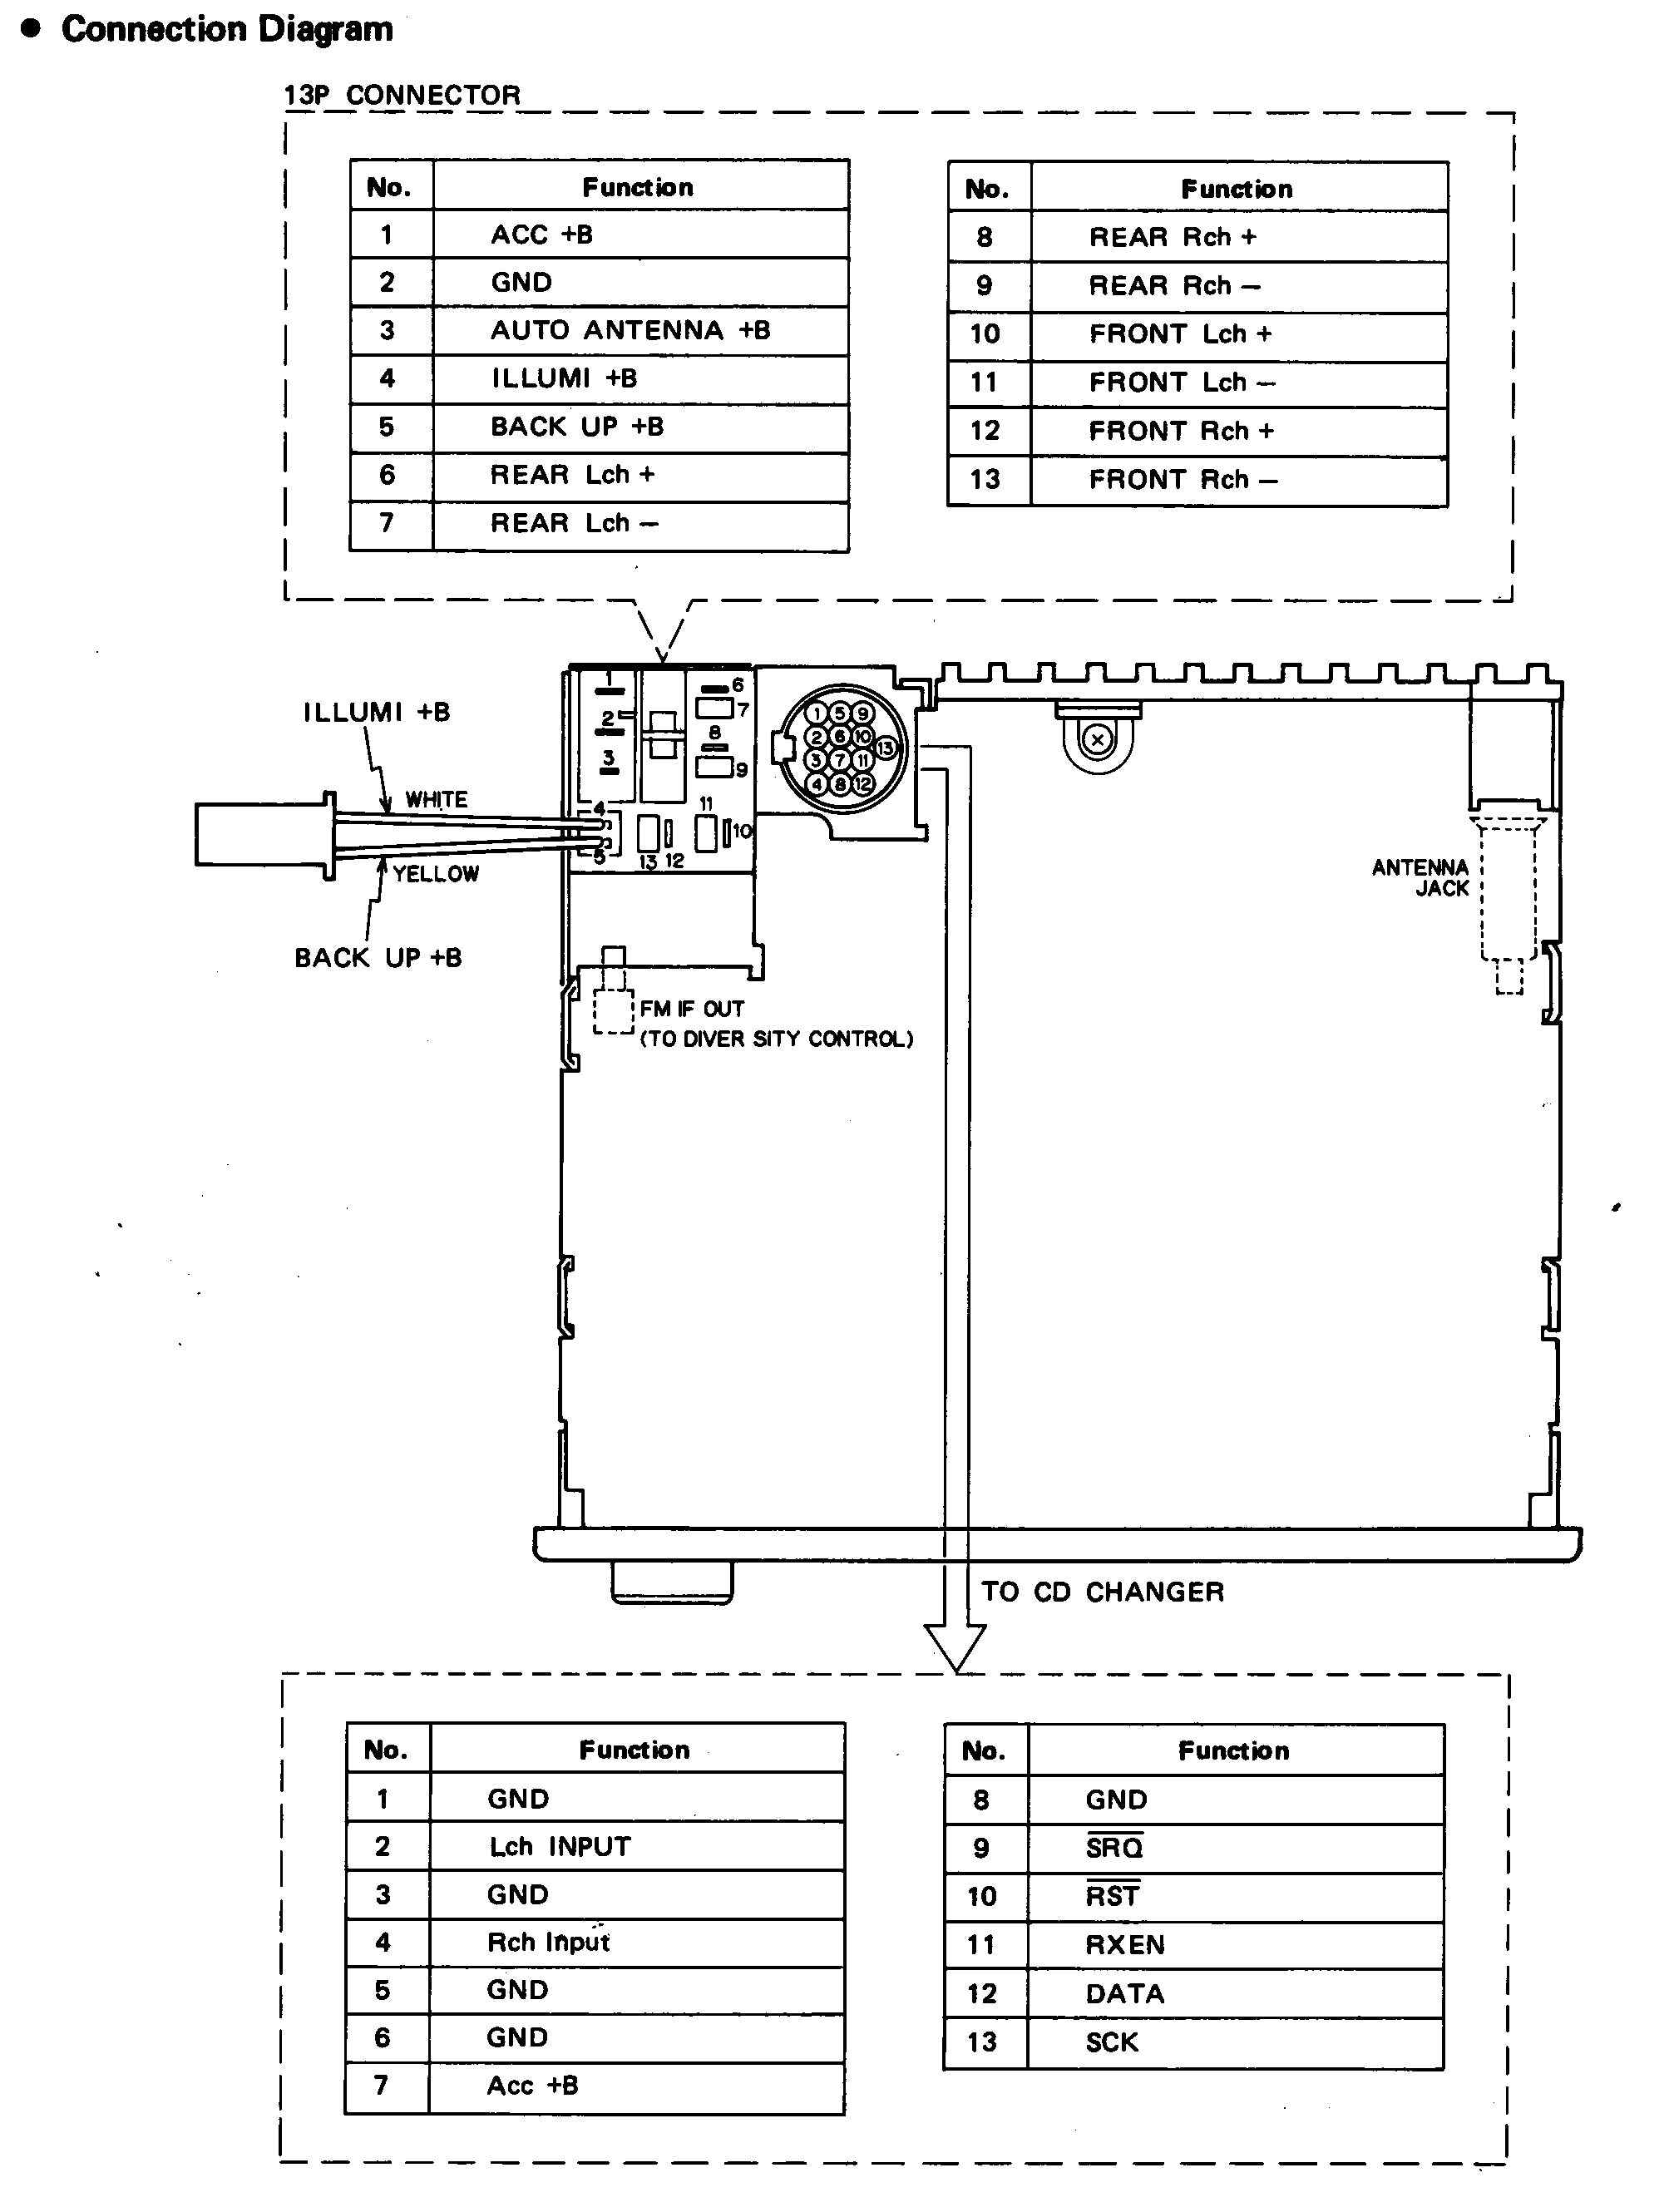 WireHarnessBMW121701 kenwood car radio wiring diagram wirdig readingrat net e46 speaker wiring diagram at gsmportal.co